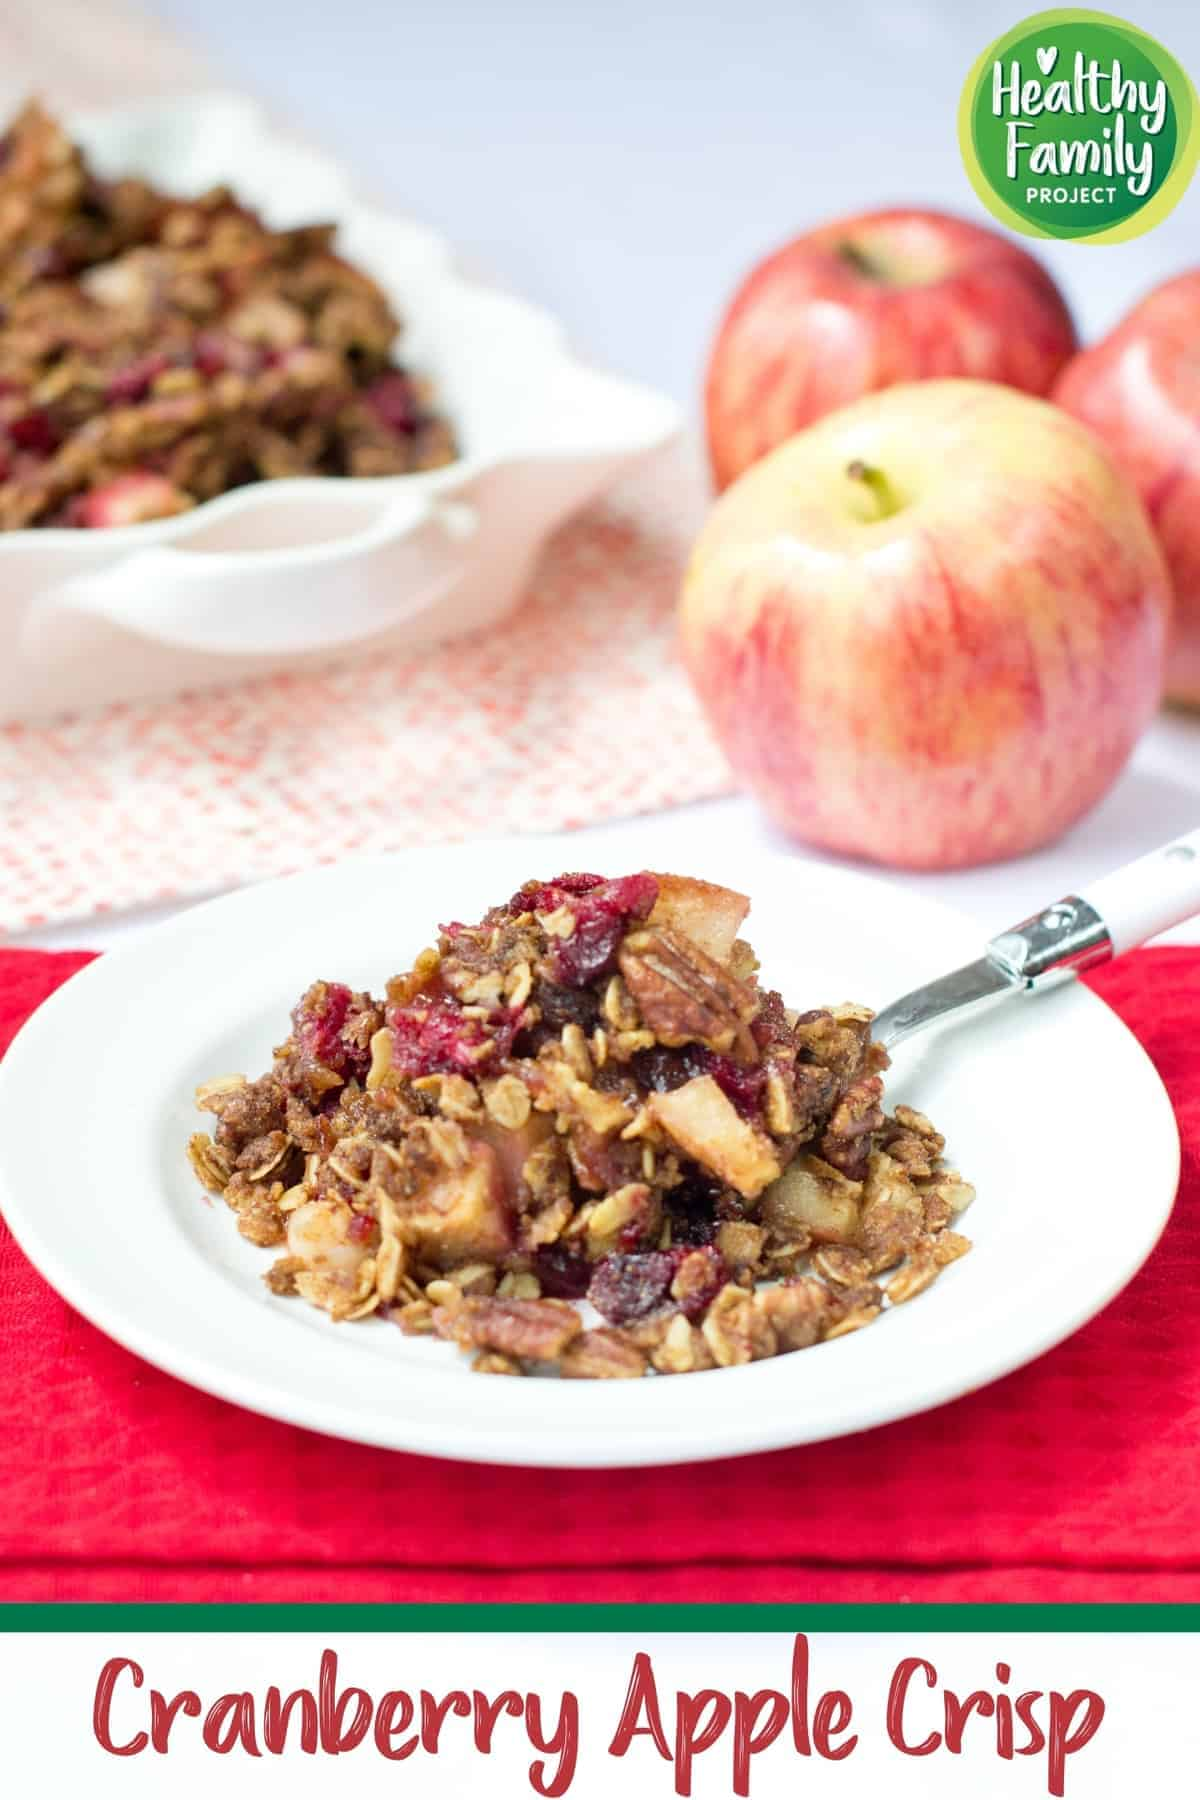 Healthy Cranberry Apple Crisp | This lightened up spin on classic fruit crisp is sure to be a new family favorite for the holidays. Fresh cranberries and apples combine perfectly for a sweet breakfast or dessert. | Healthy Family Project #applecrisp #holidaydessert #FestiveFlavors #cranberries #crisp #apples